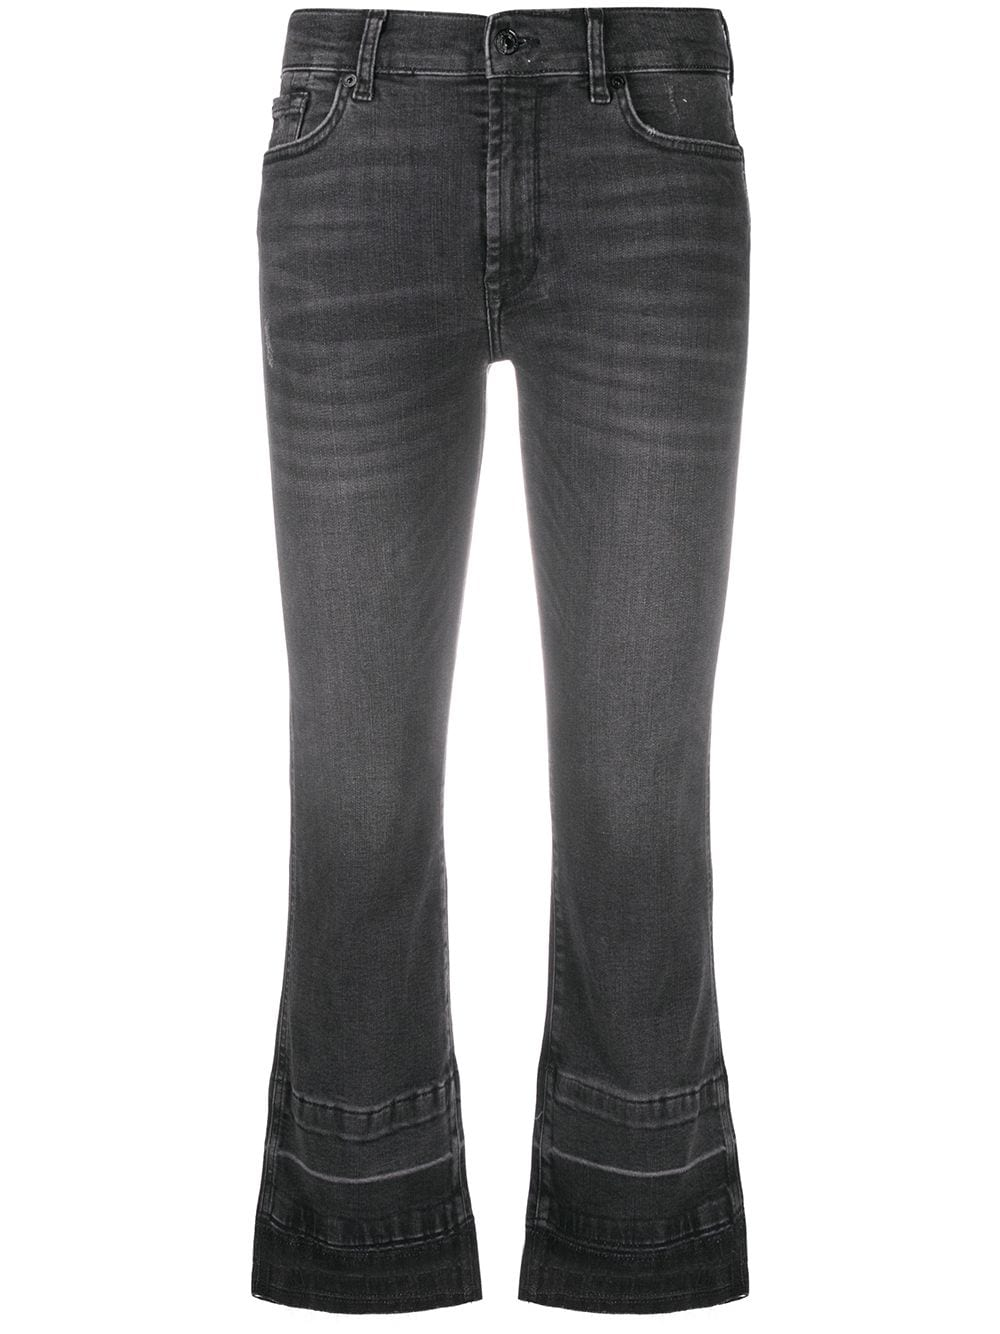 Black stretch cotton denim Illusion cropped bootcut jeans 7 FOR ALL MANKIND      JSYRB260SE-CROPPED BOO UNROLLETBLACK